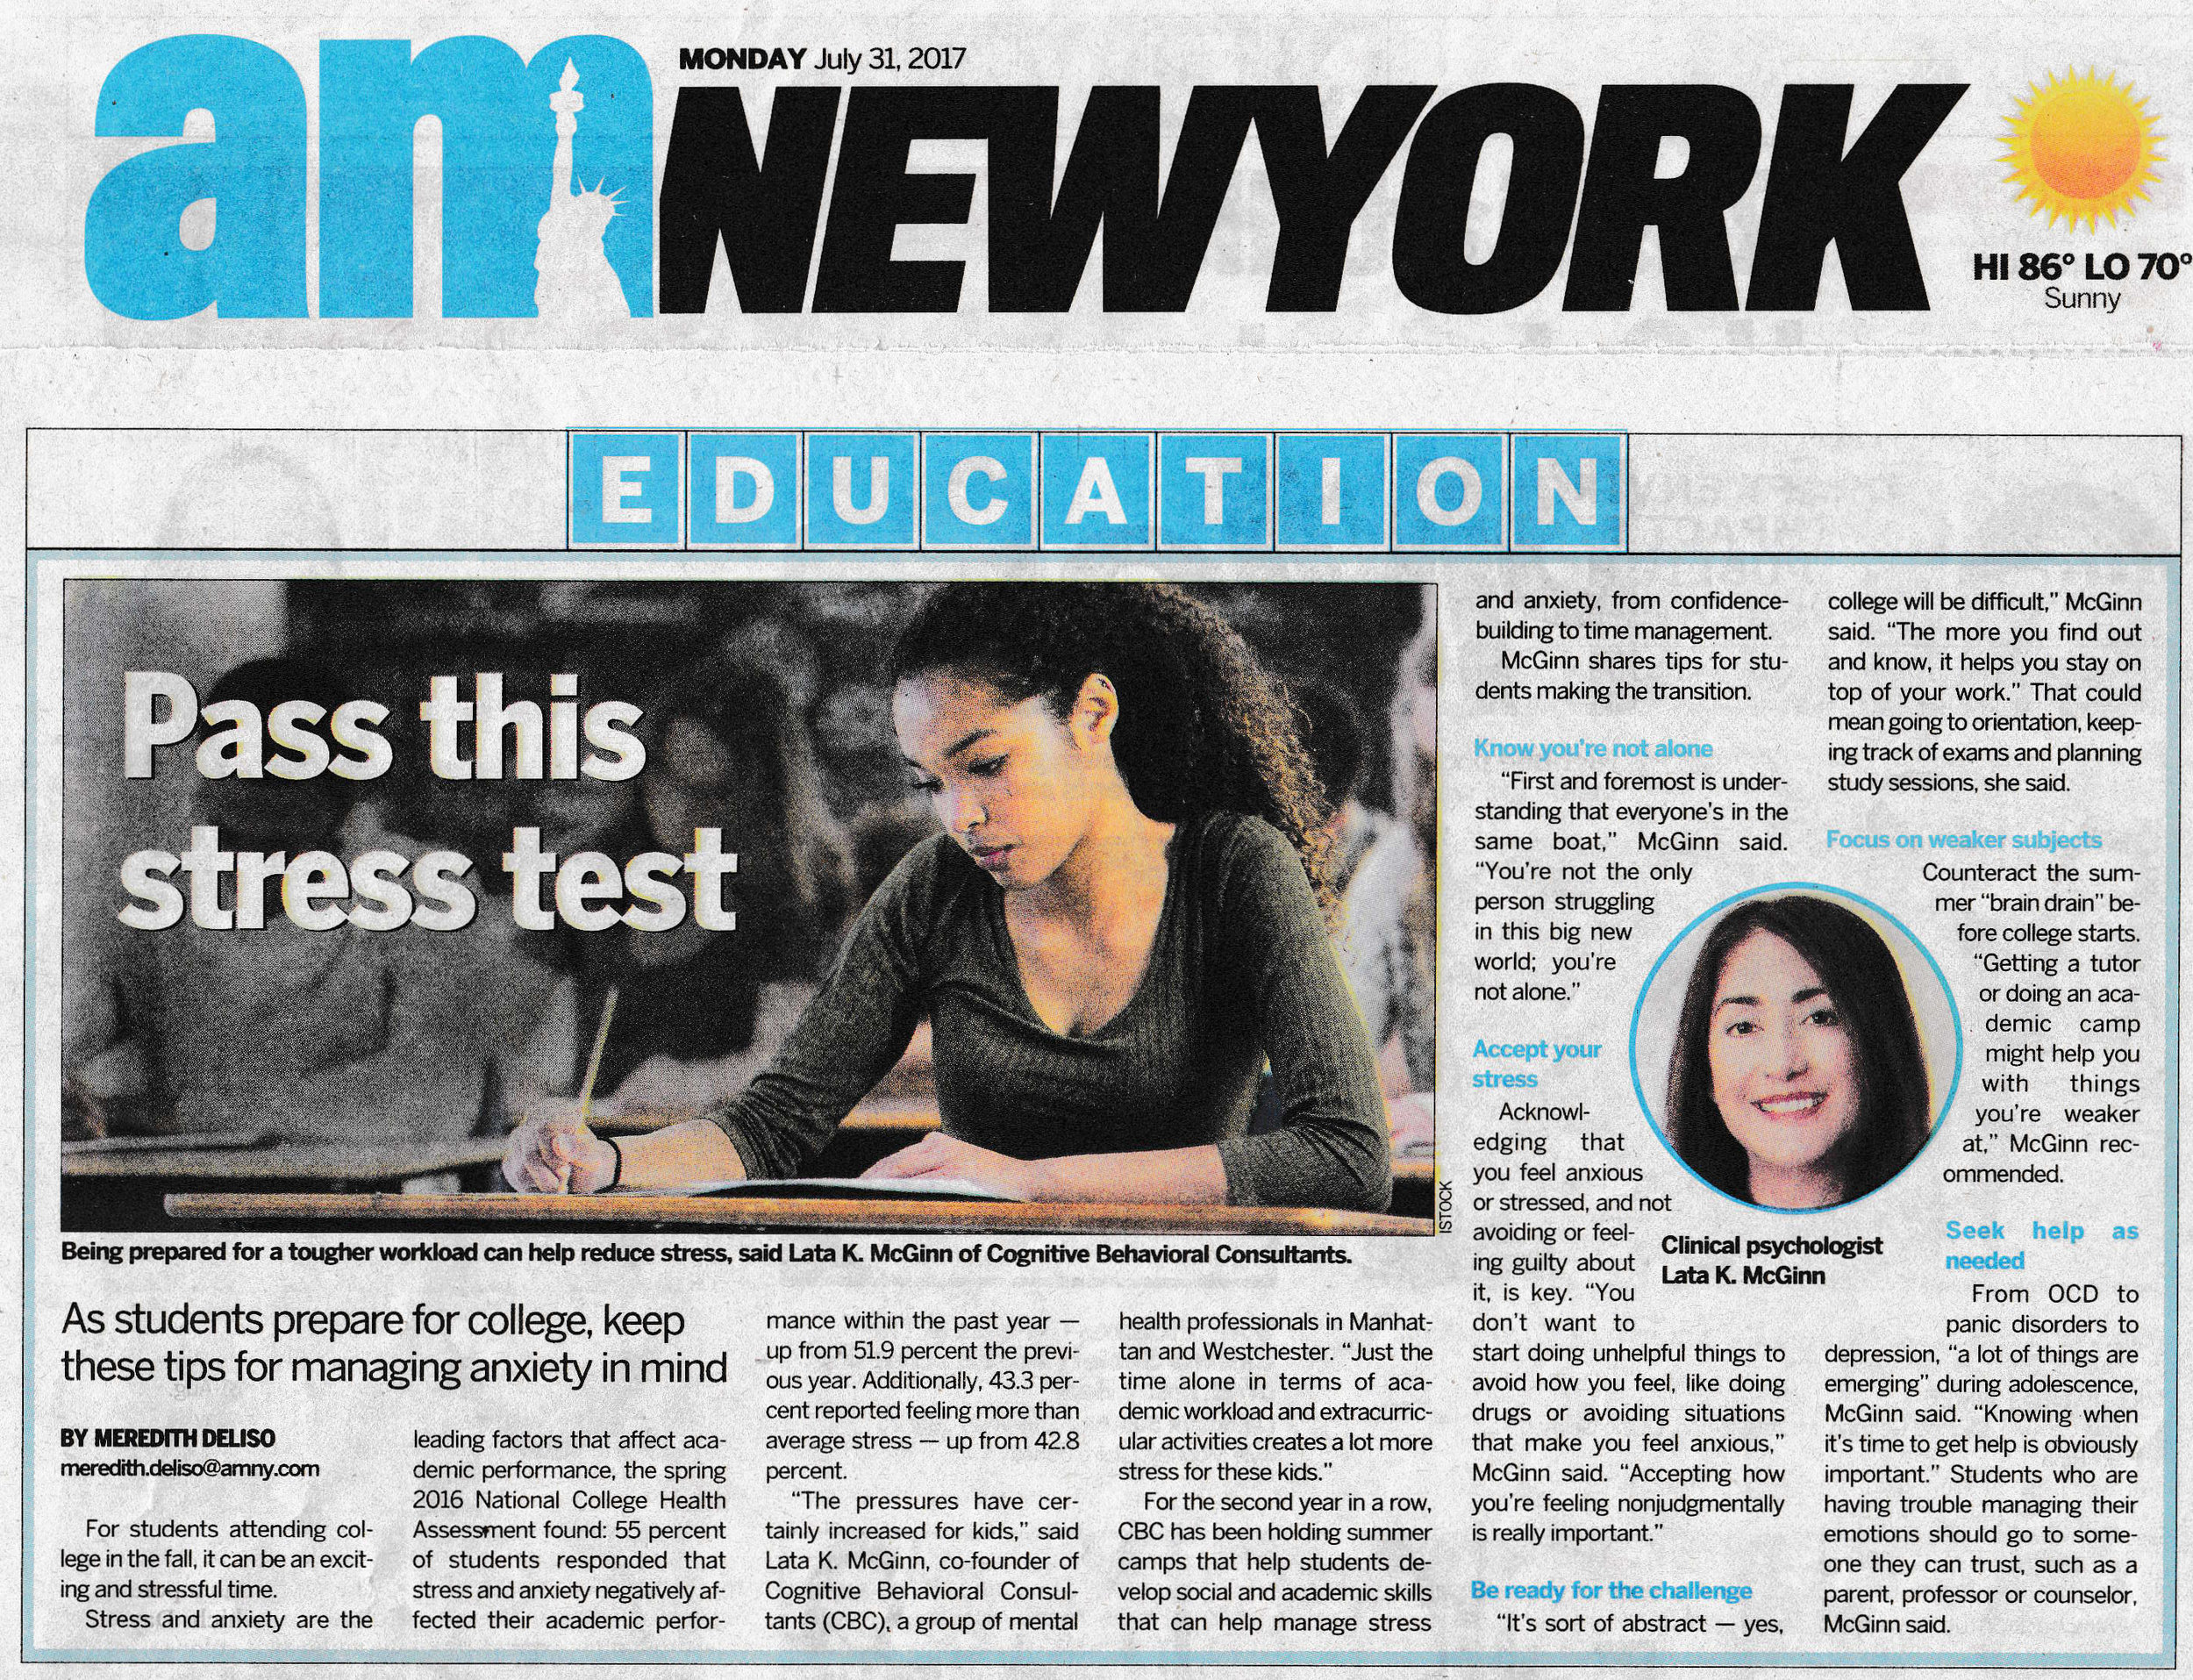 amny article_edited-1.jpg